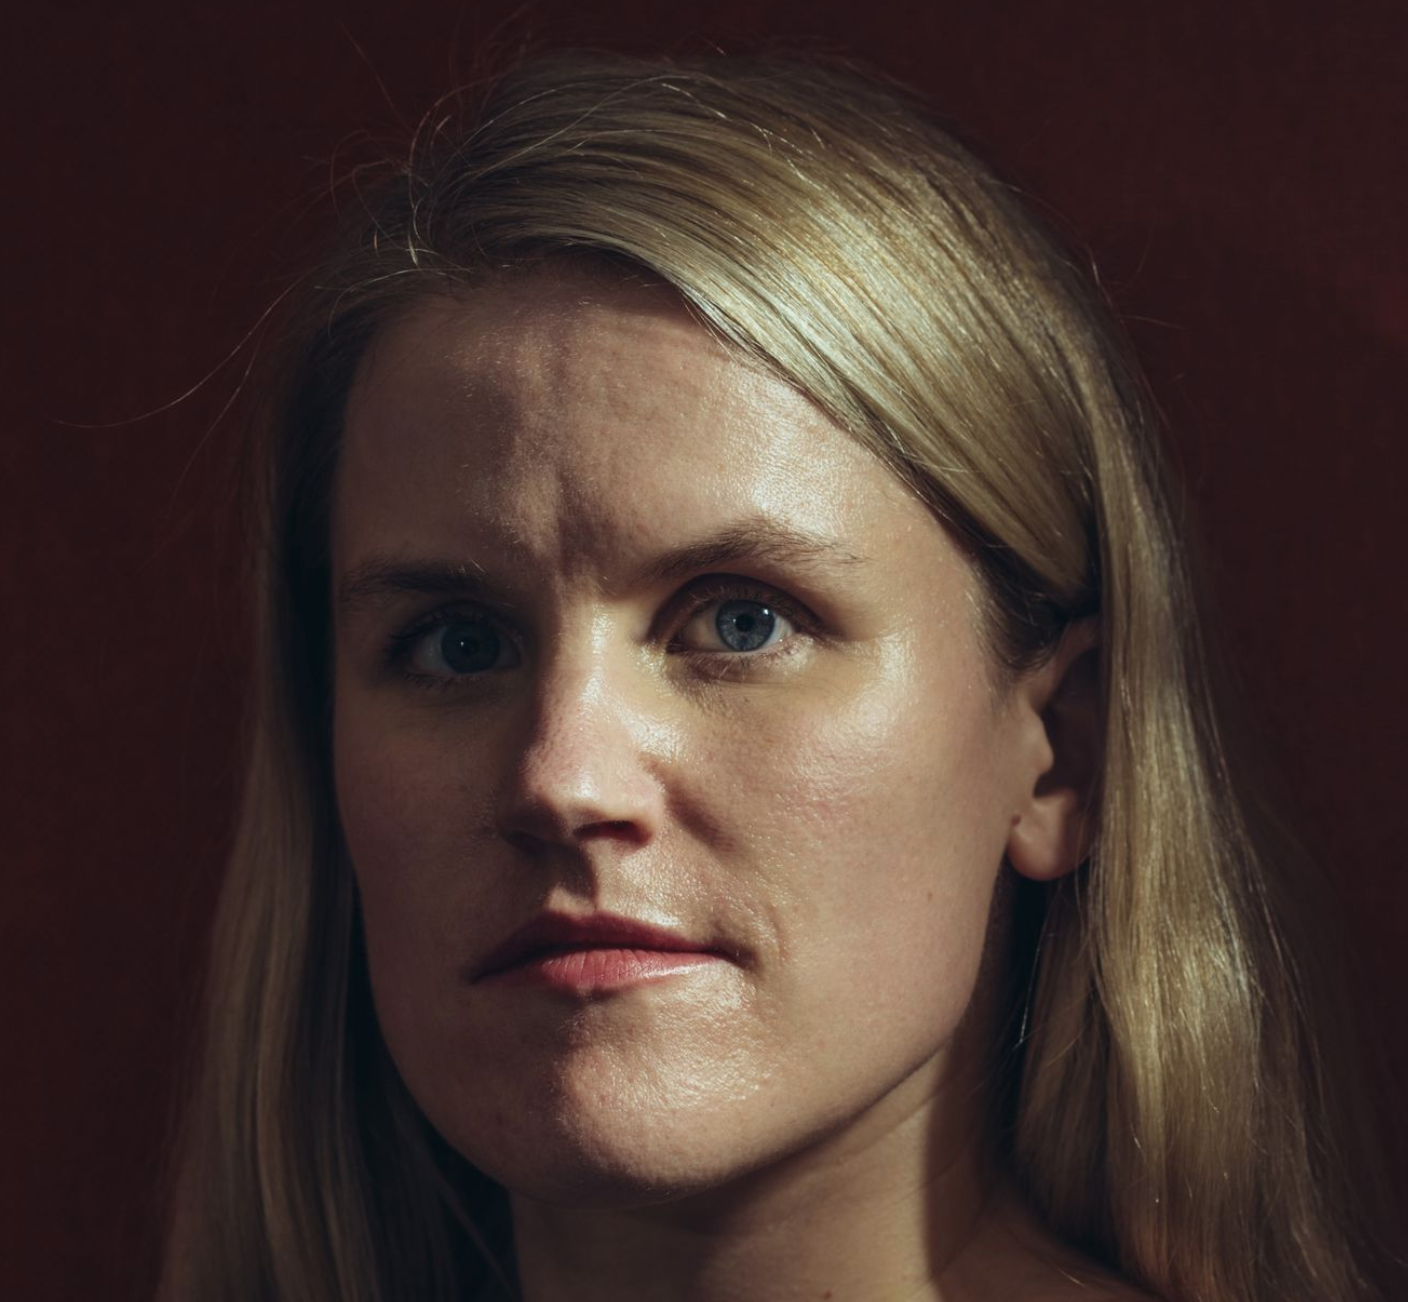 The Facebook Whistleblower, Frances Haugen, Says She Wants To Fix The Company, Not Harm It